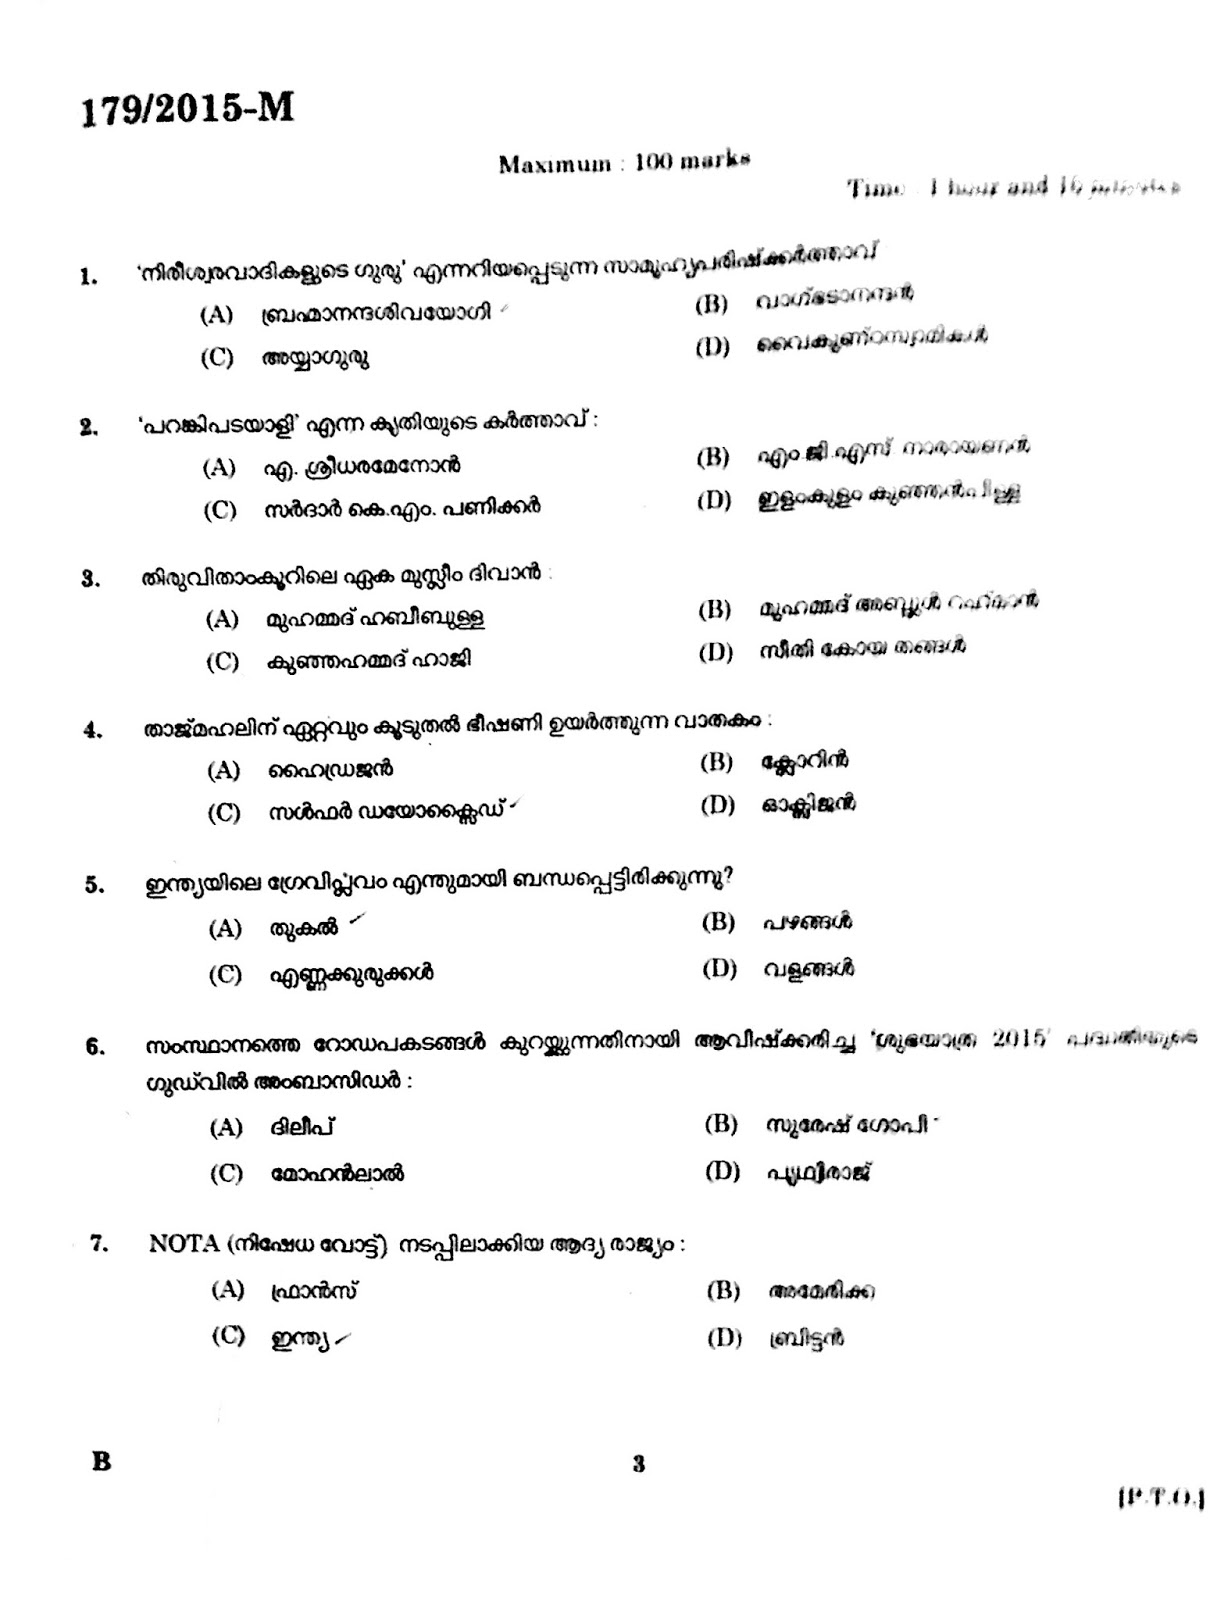 answer key and question paper of kerala psc police constable apb kpsc police constable 2015 question paper